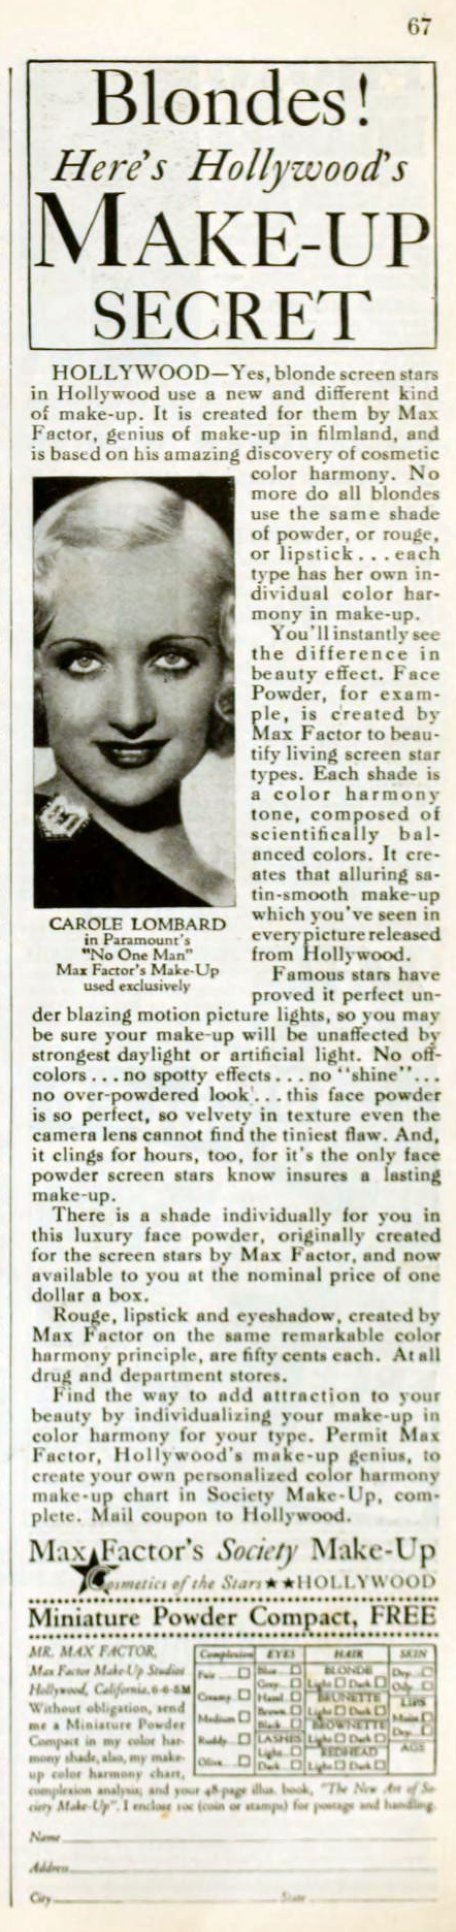 carole lombard picture play june 1932 ad large